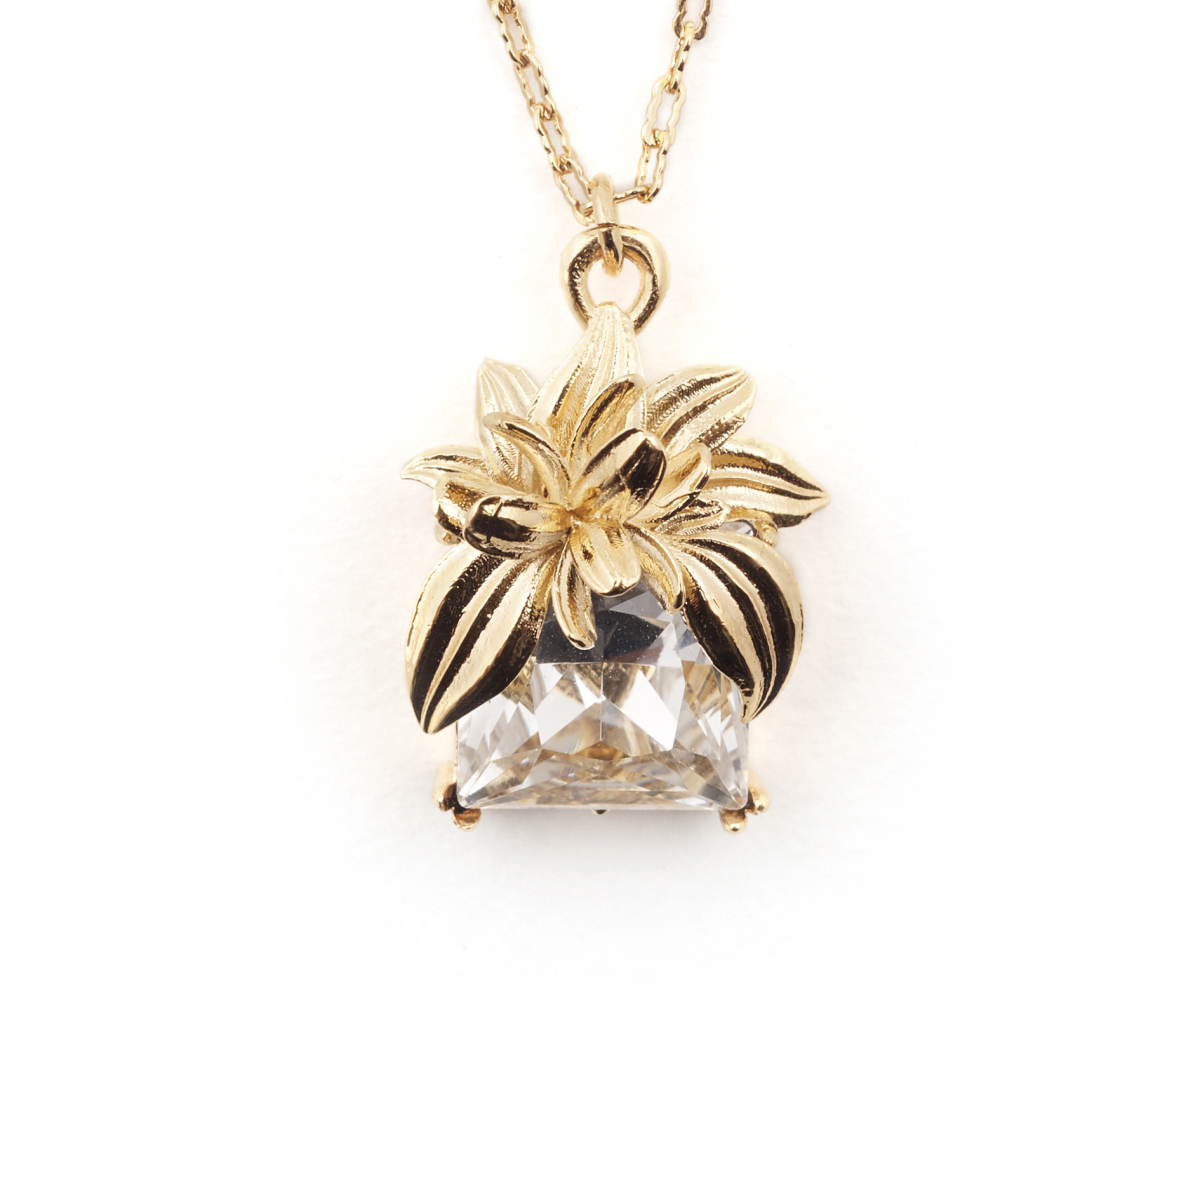 The Evelyn Edit Crystal Pendant - Large